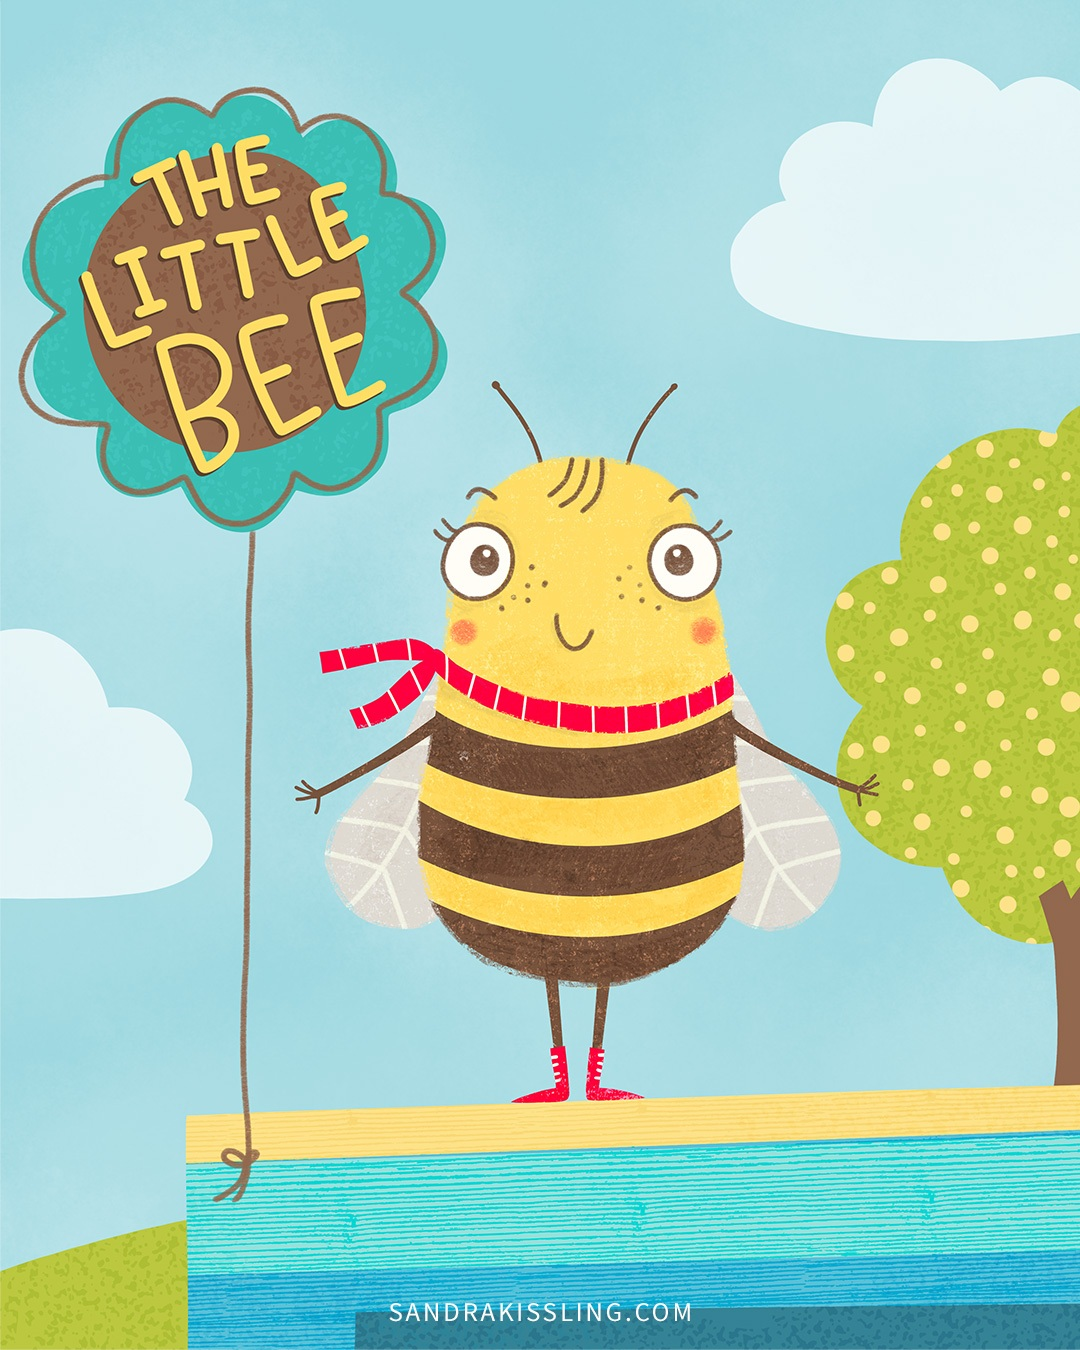 childrensbook-character-little-bee.jpg